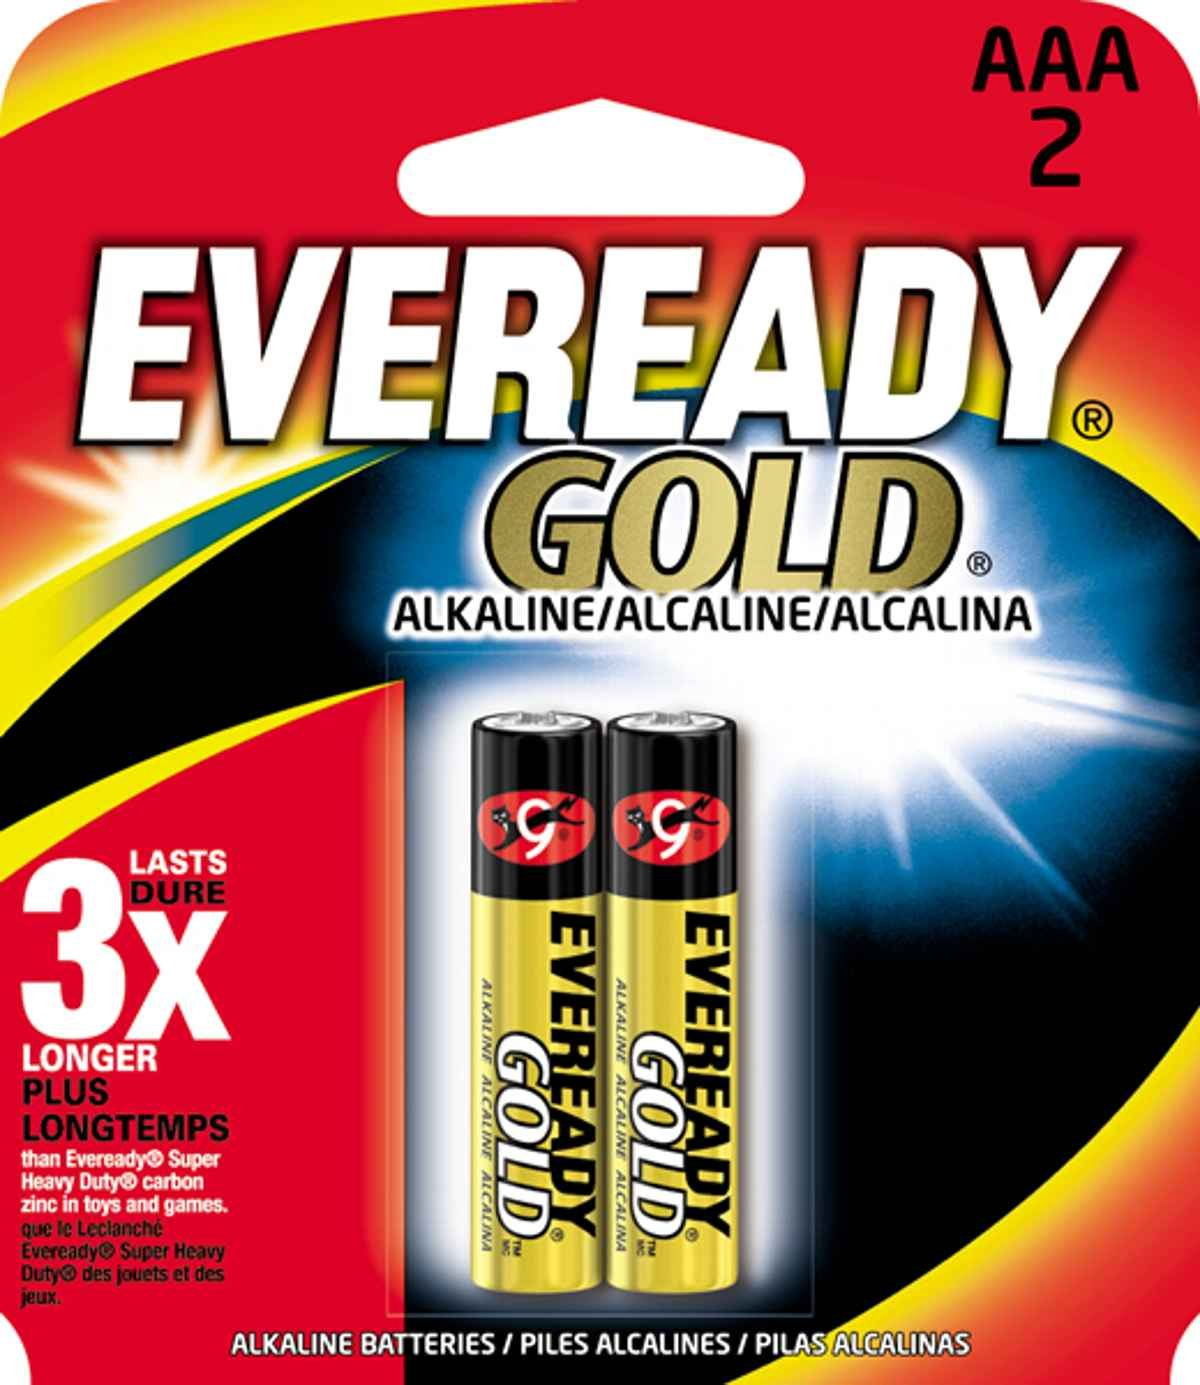 ENERGIZER AAA2 EVEREADY AAA Alkaline Battery